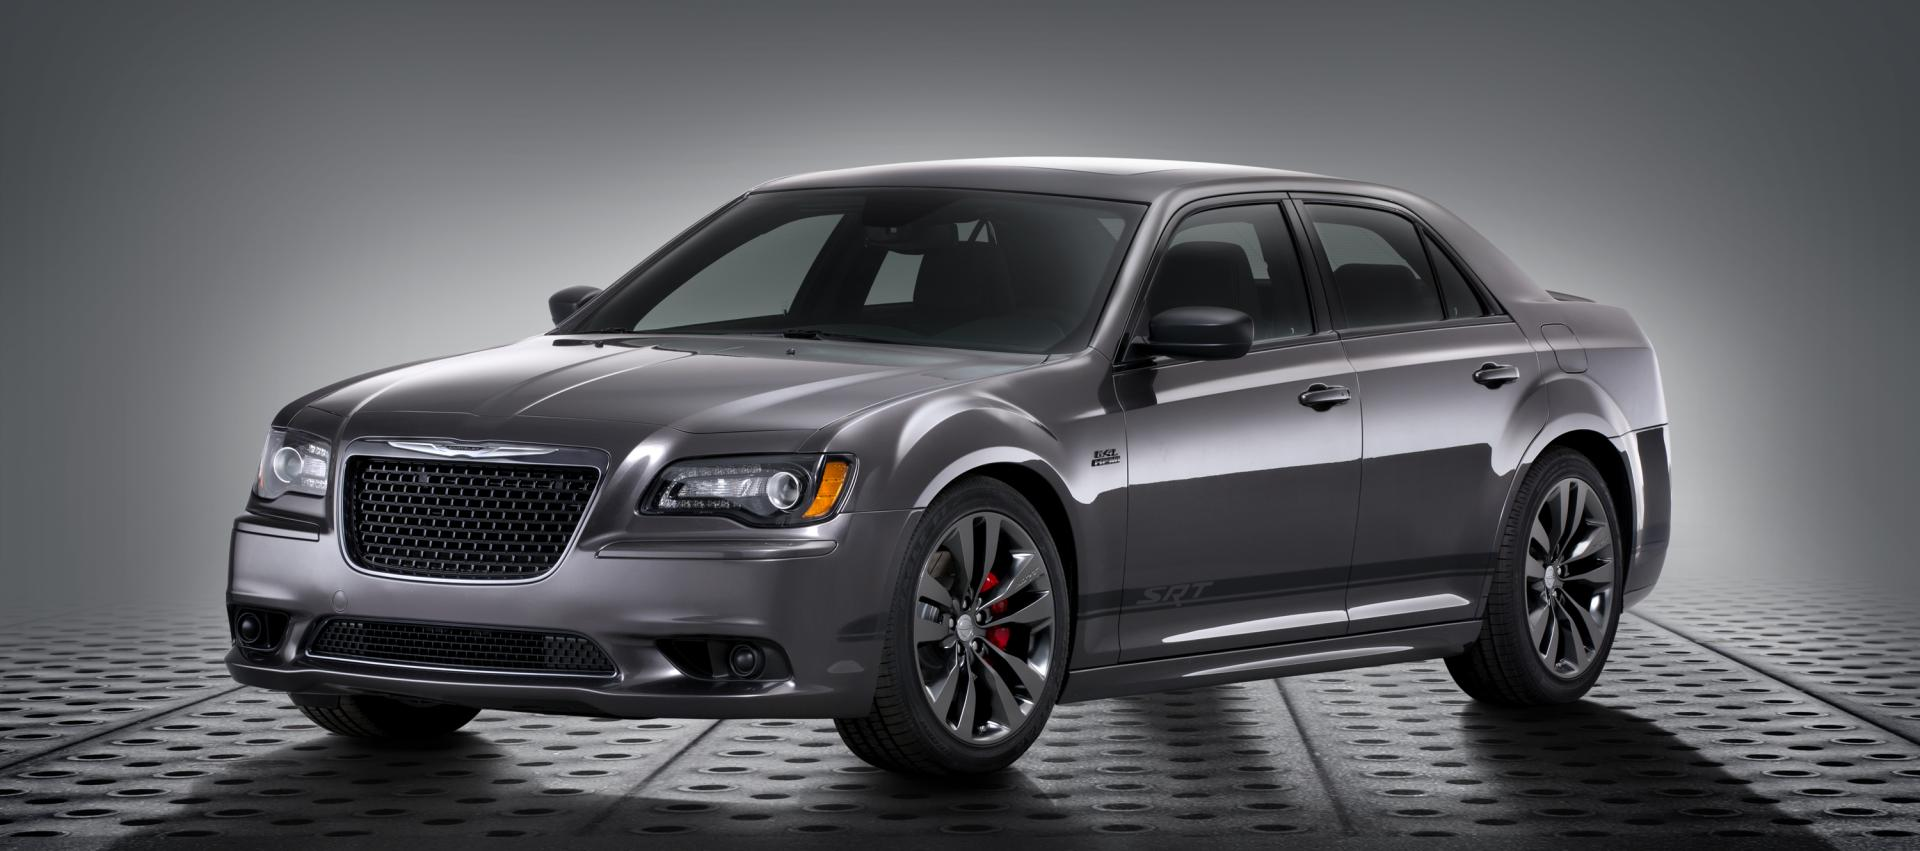 Grand Wagoneer 2017 >> 2014 Chrysler 300 SRT Satin Vapor Edition - conceptcarz.com